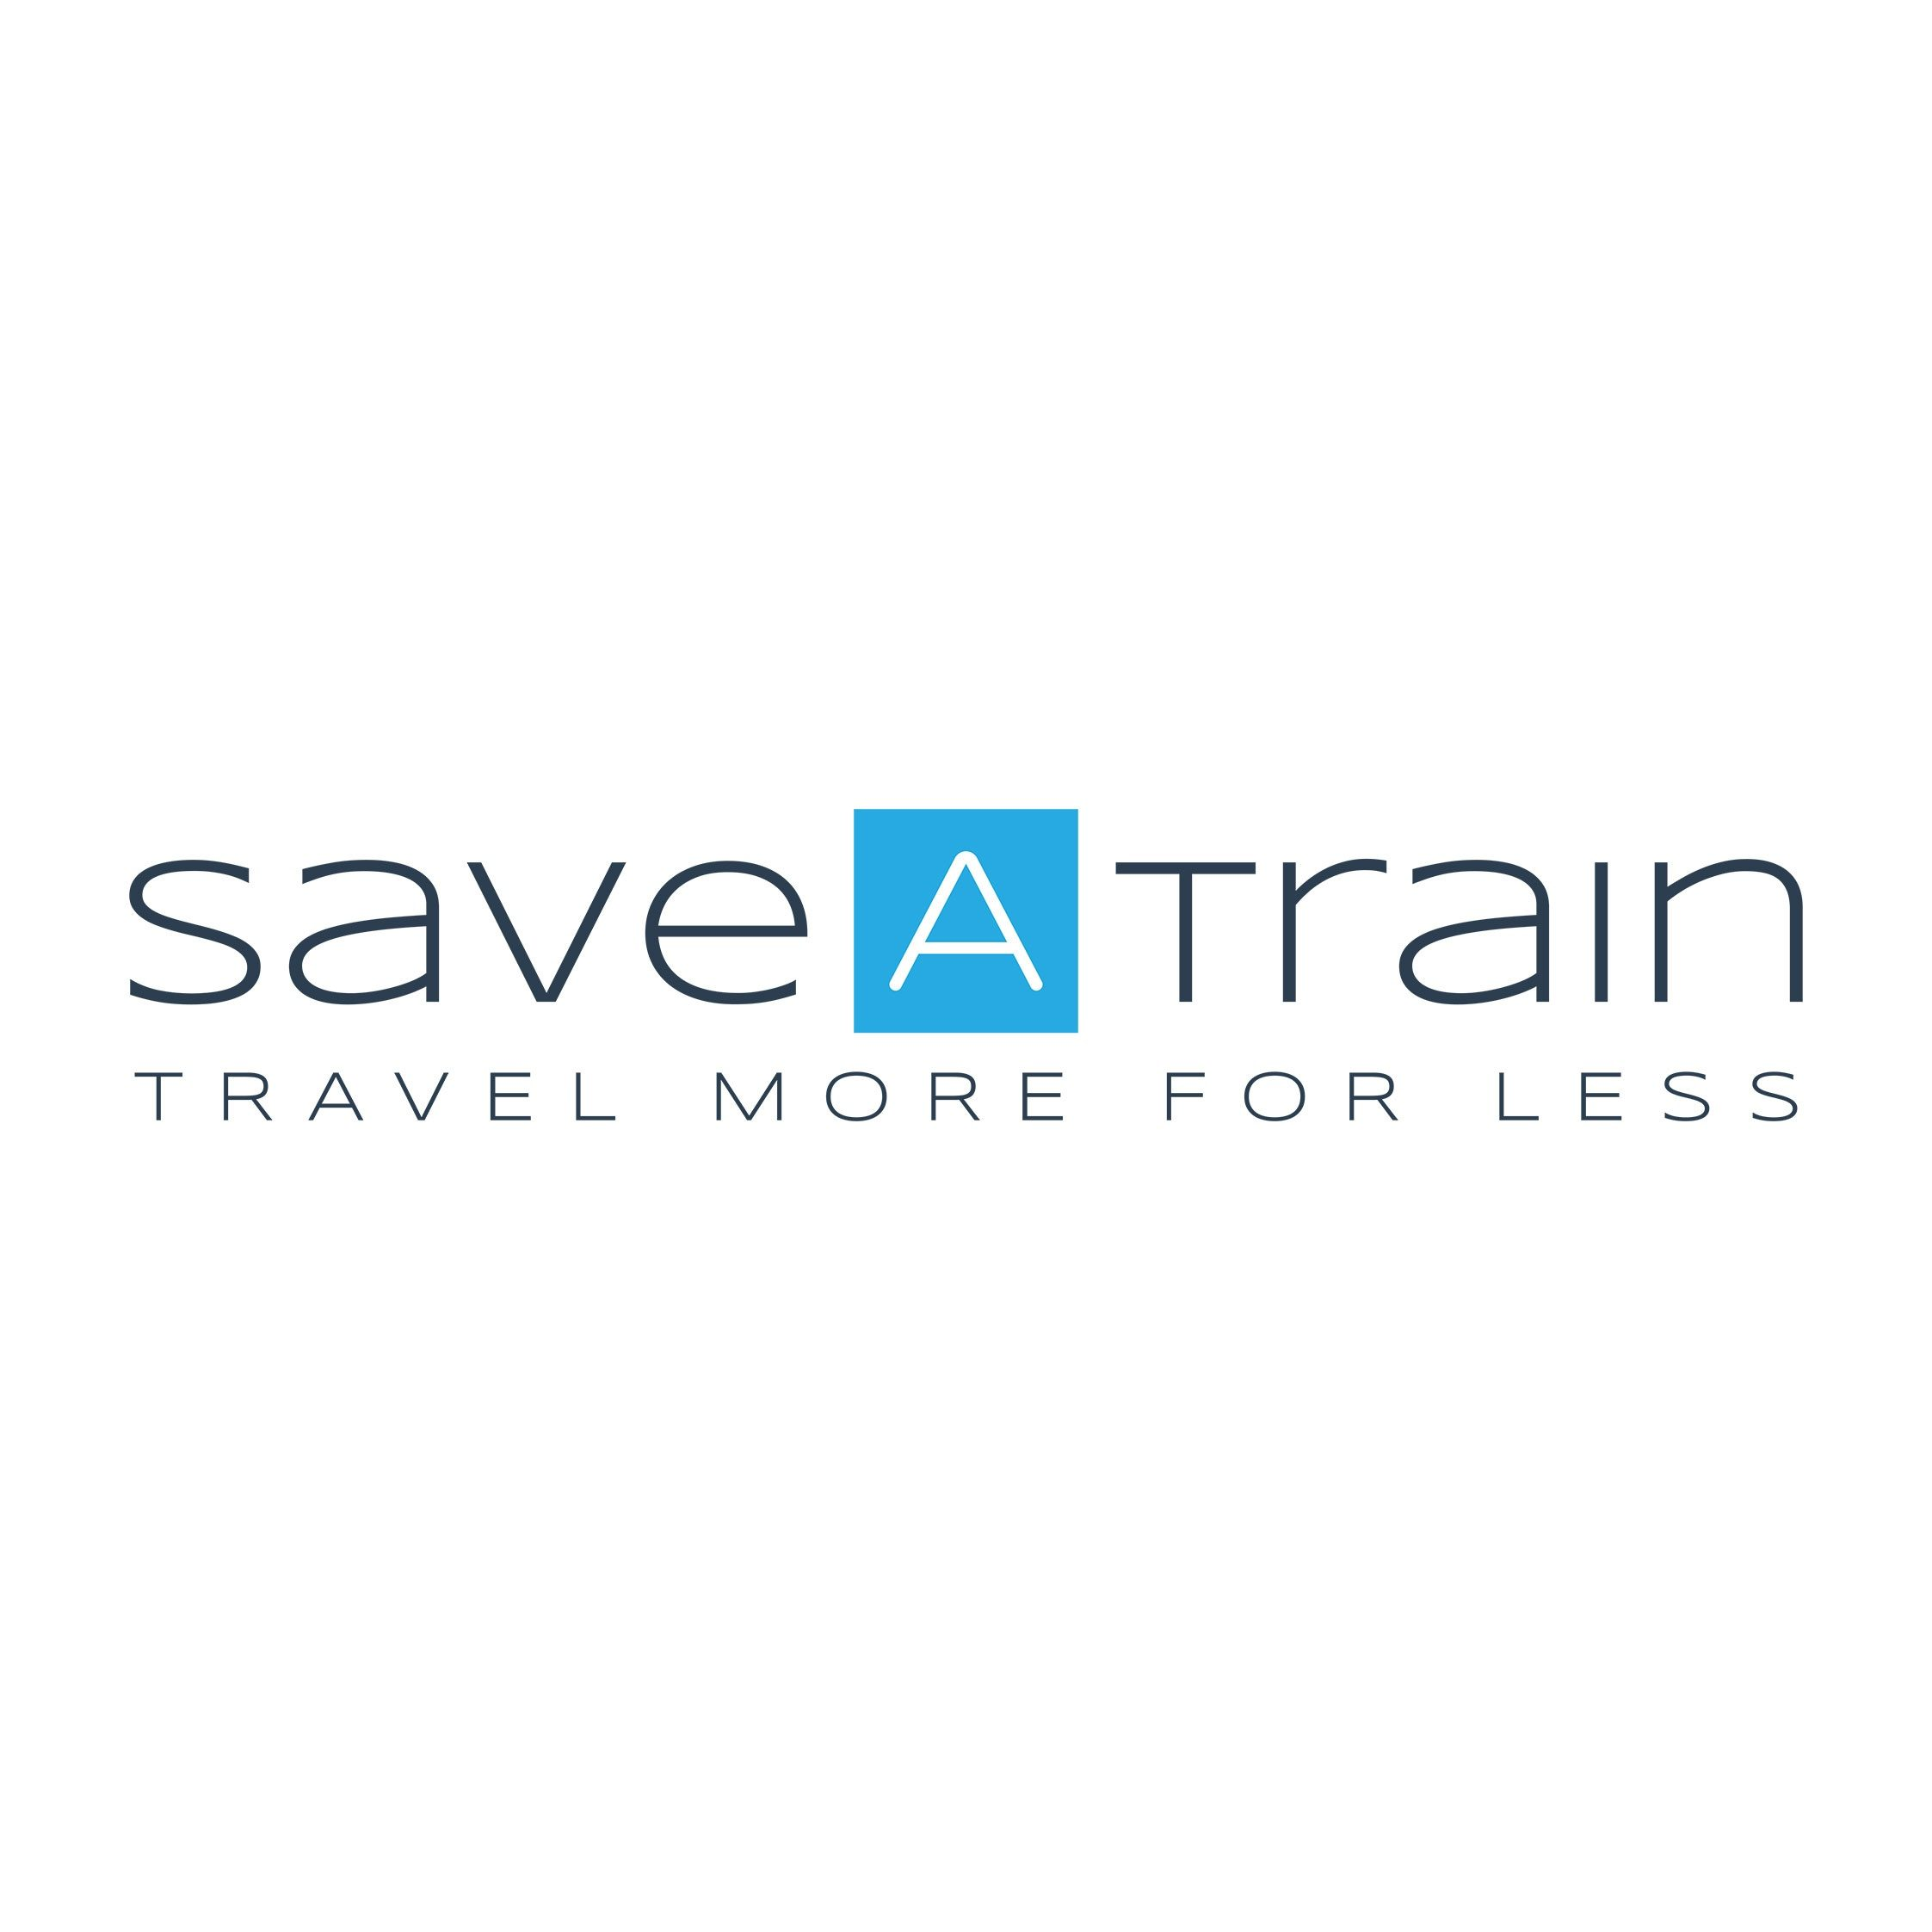 About Save A Train